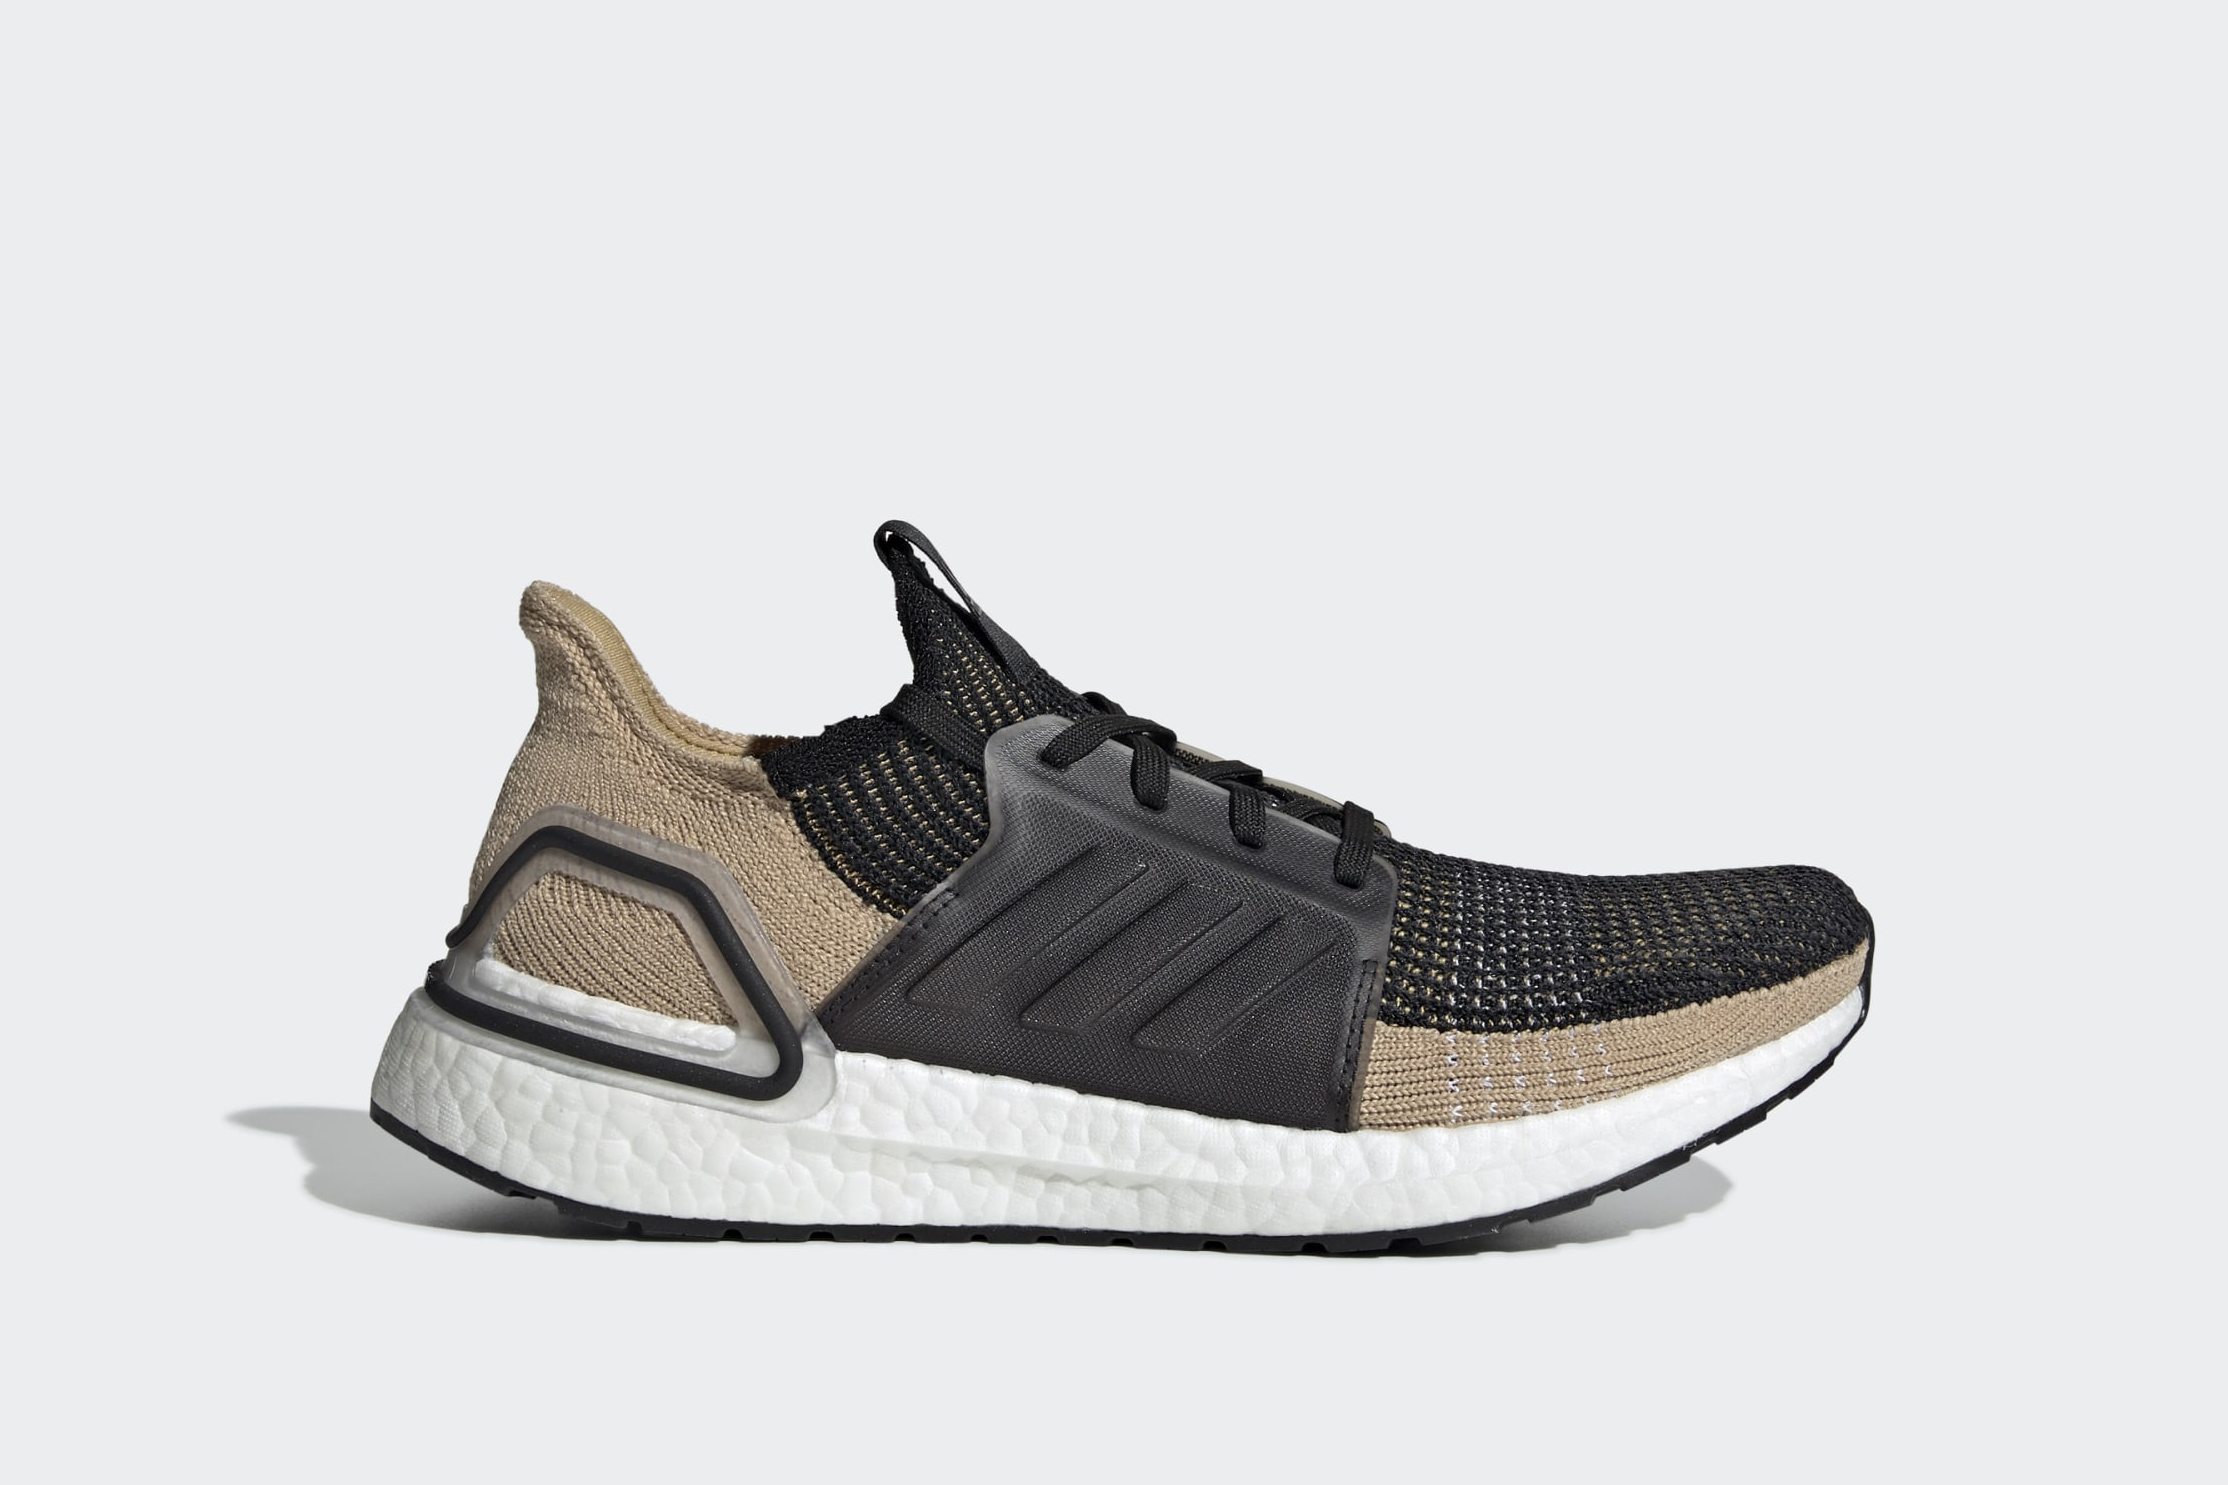 promo code 9e788 cc667 Buy at adidas · Ultraboost 19